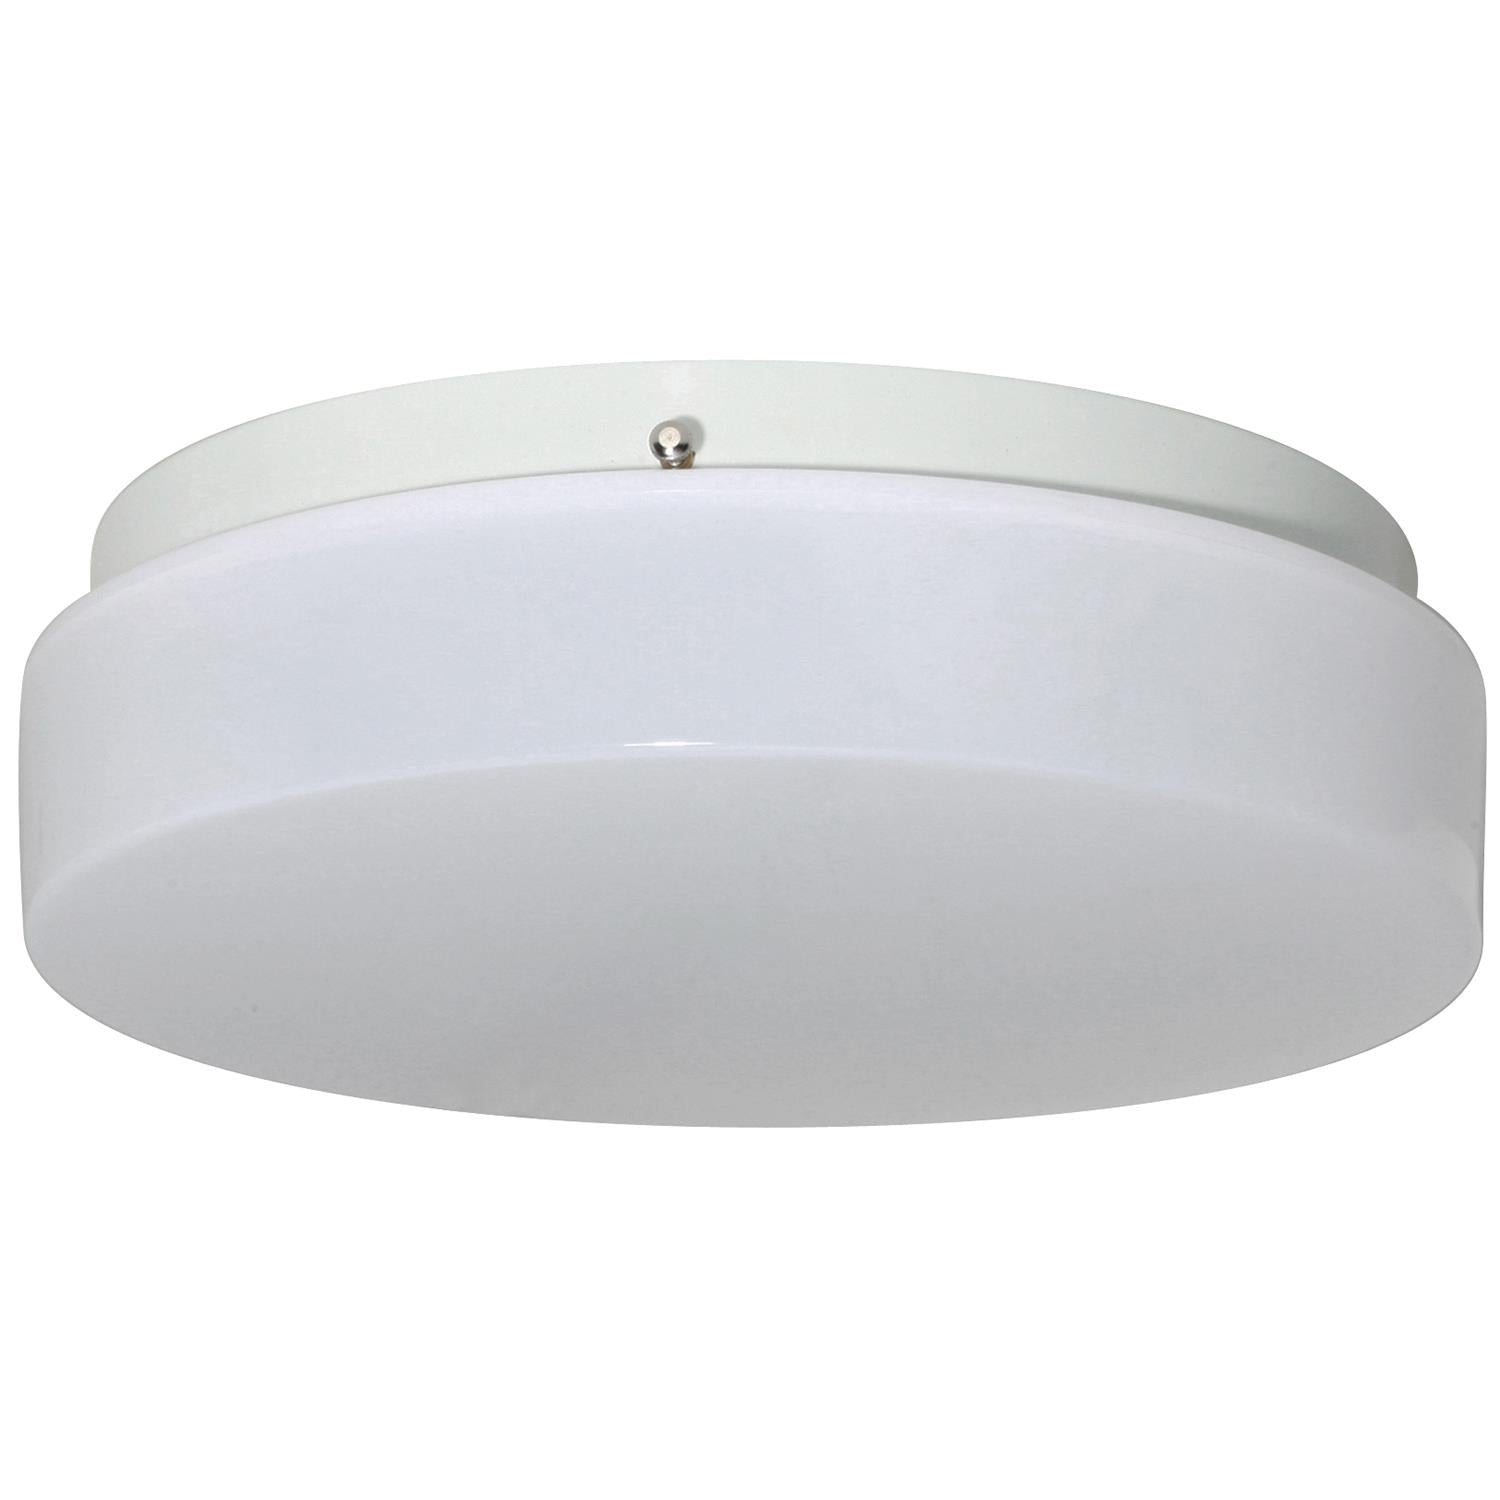 "Sunlite 14"" LED Circline Fixture 17W 1570Lm 3000K Warm White Dimmable"